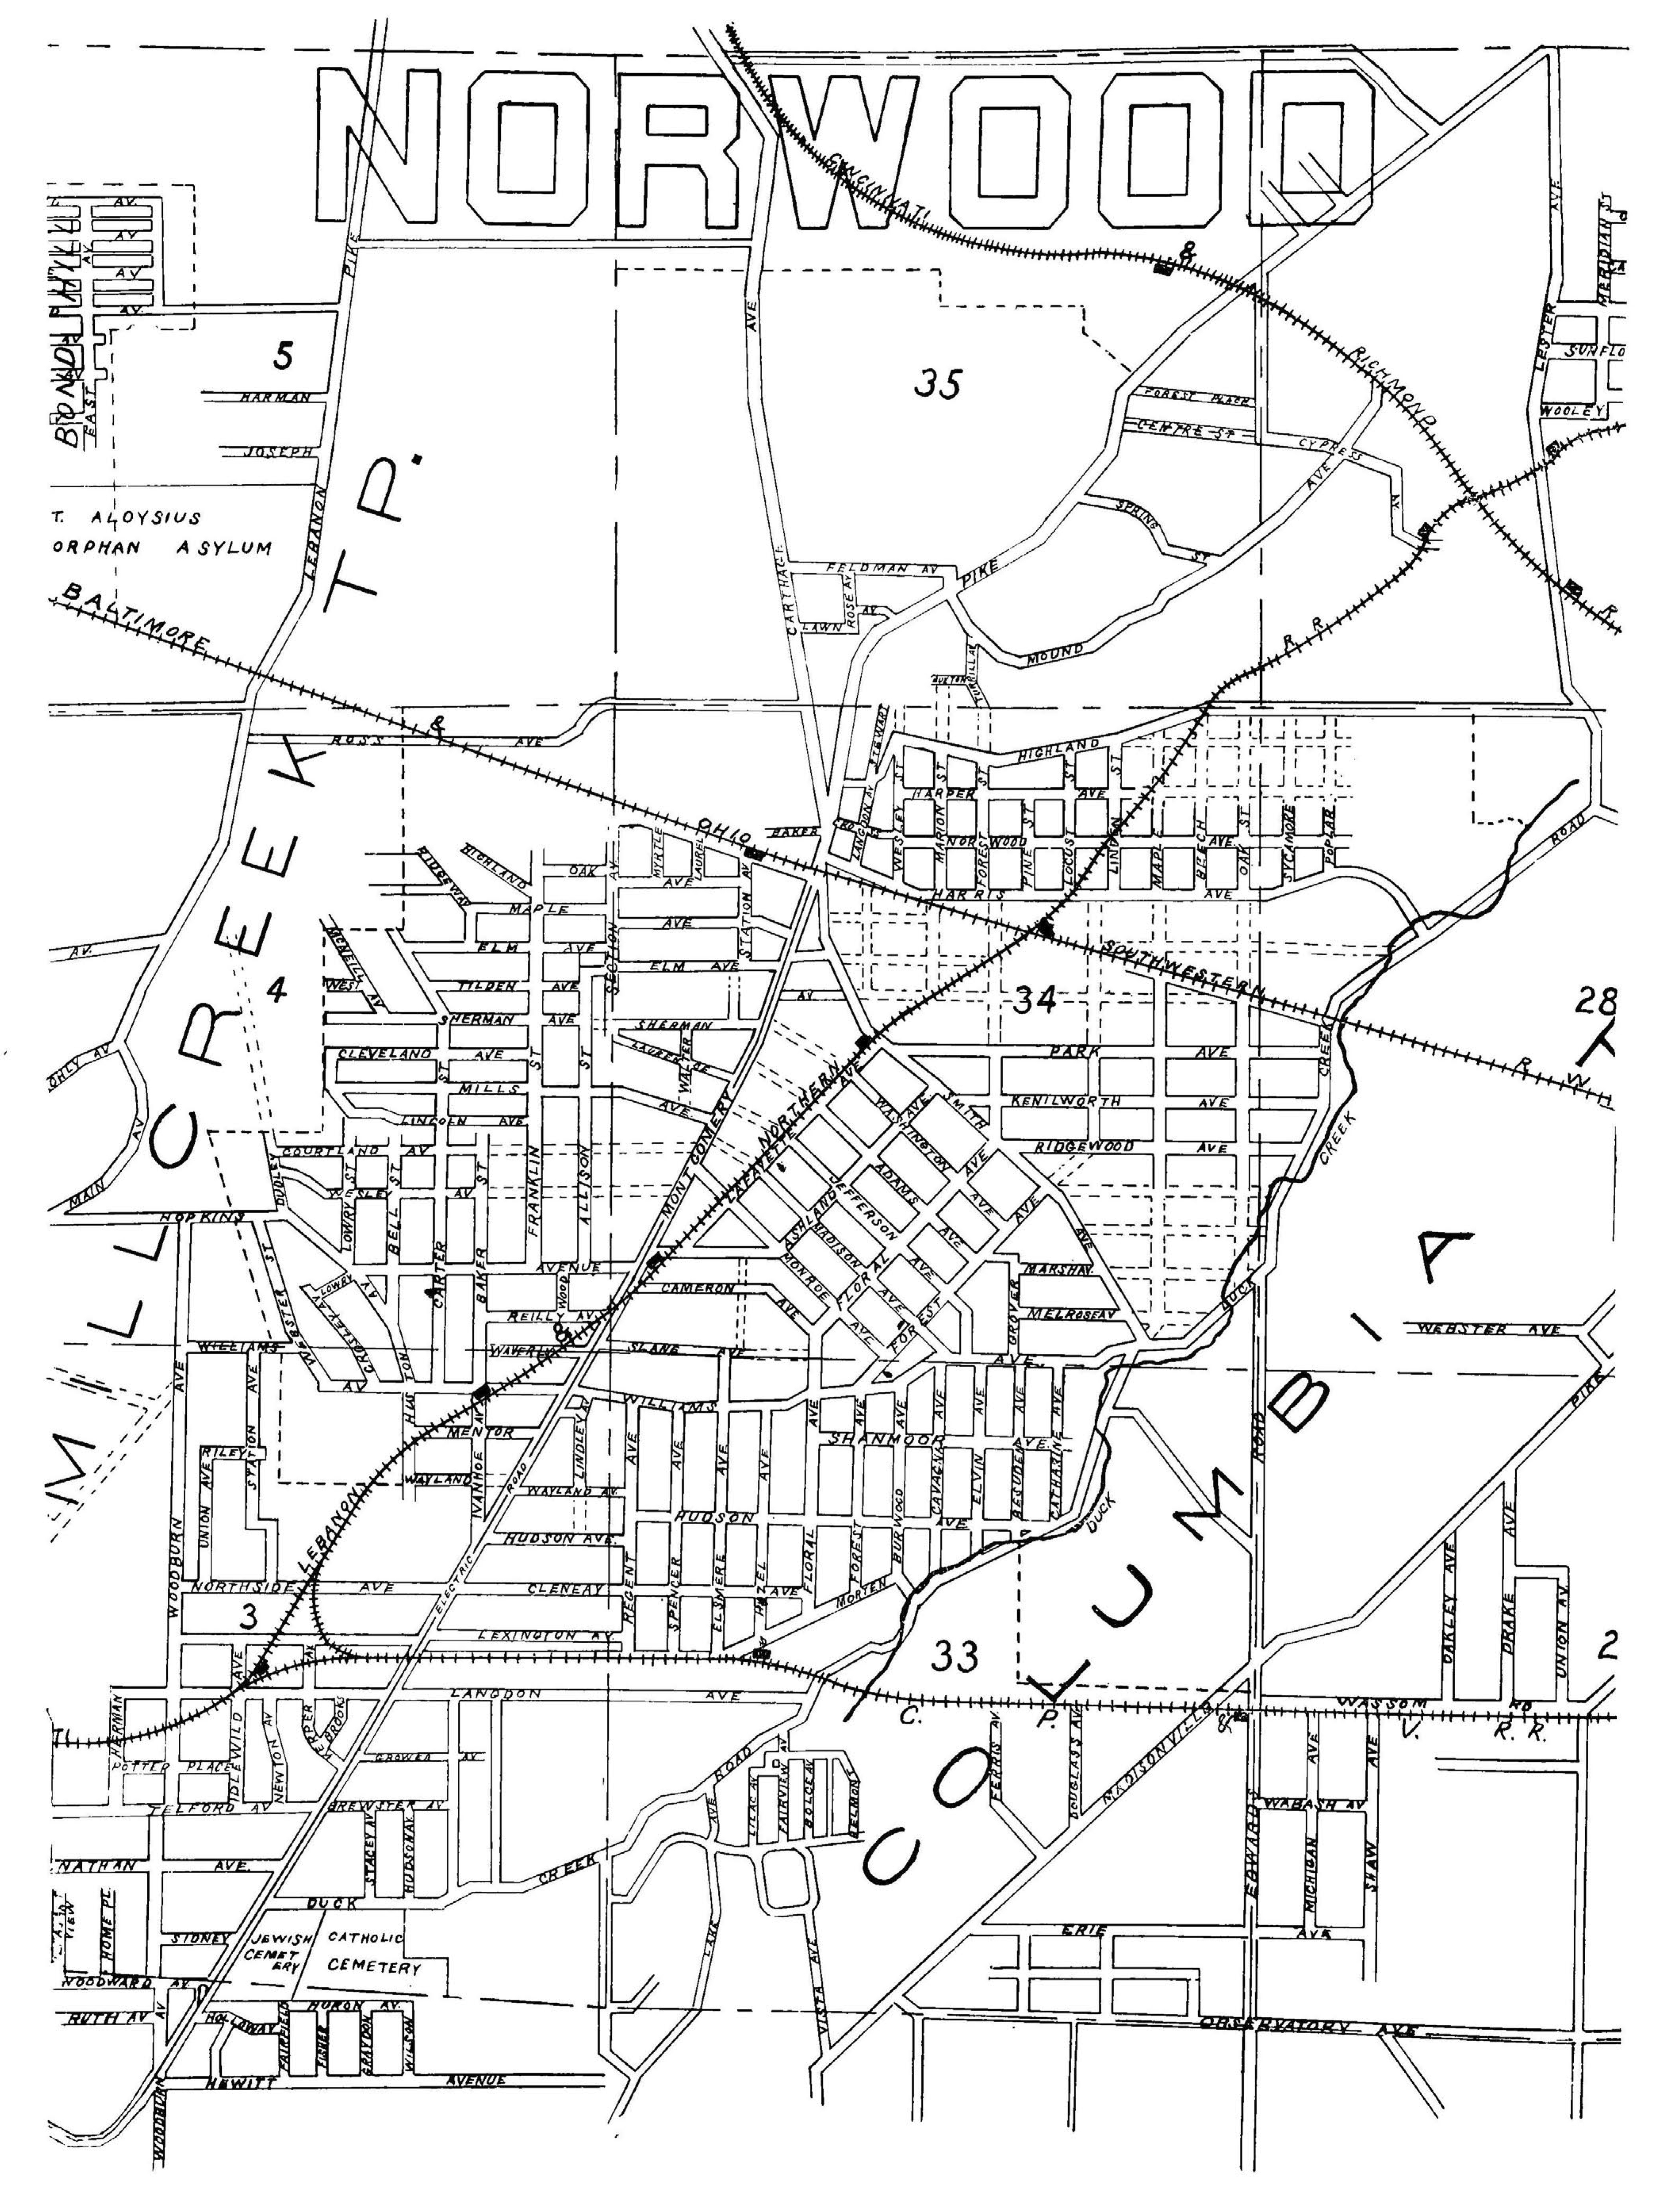 File:Original Map Norwood Ohio Founded 1888.jpg - Wikimedia ... on walpole map, oxford map, orange map, duxbury map, alpine map, cambridge map, union map, london map, lodi map, arlington map, verona map, greenville map, kingston map, somerset map, shrewsbury map, gloucester map, westport map, hastings map, quincy map, sudbury map,